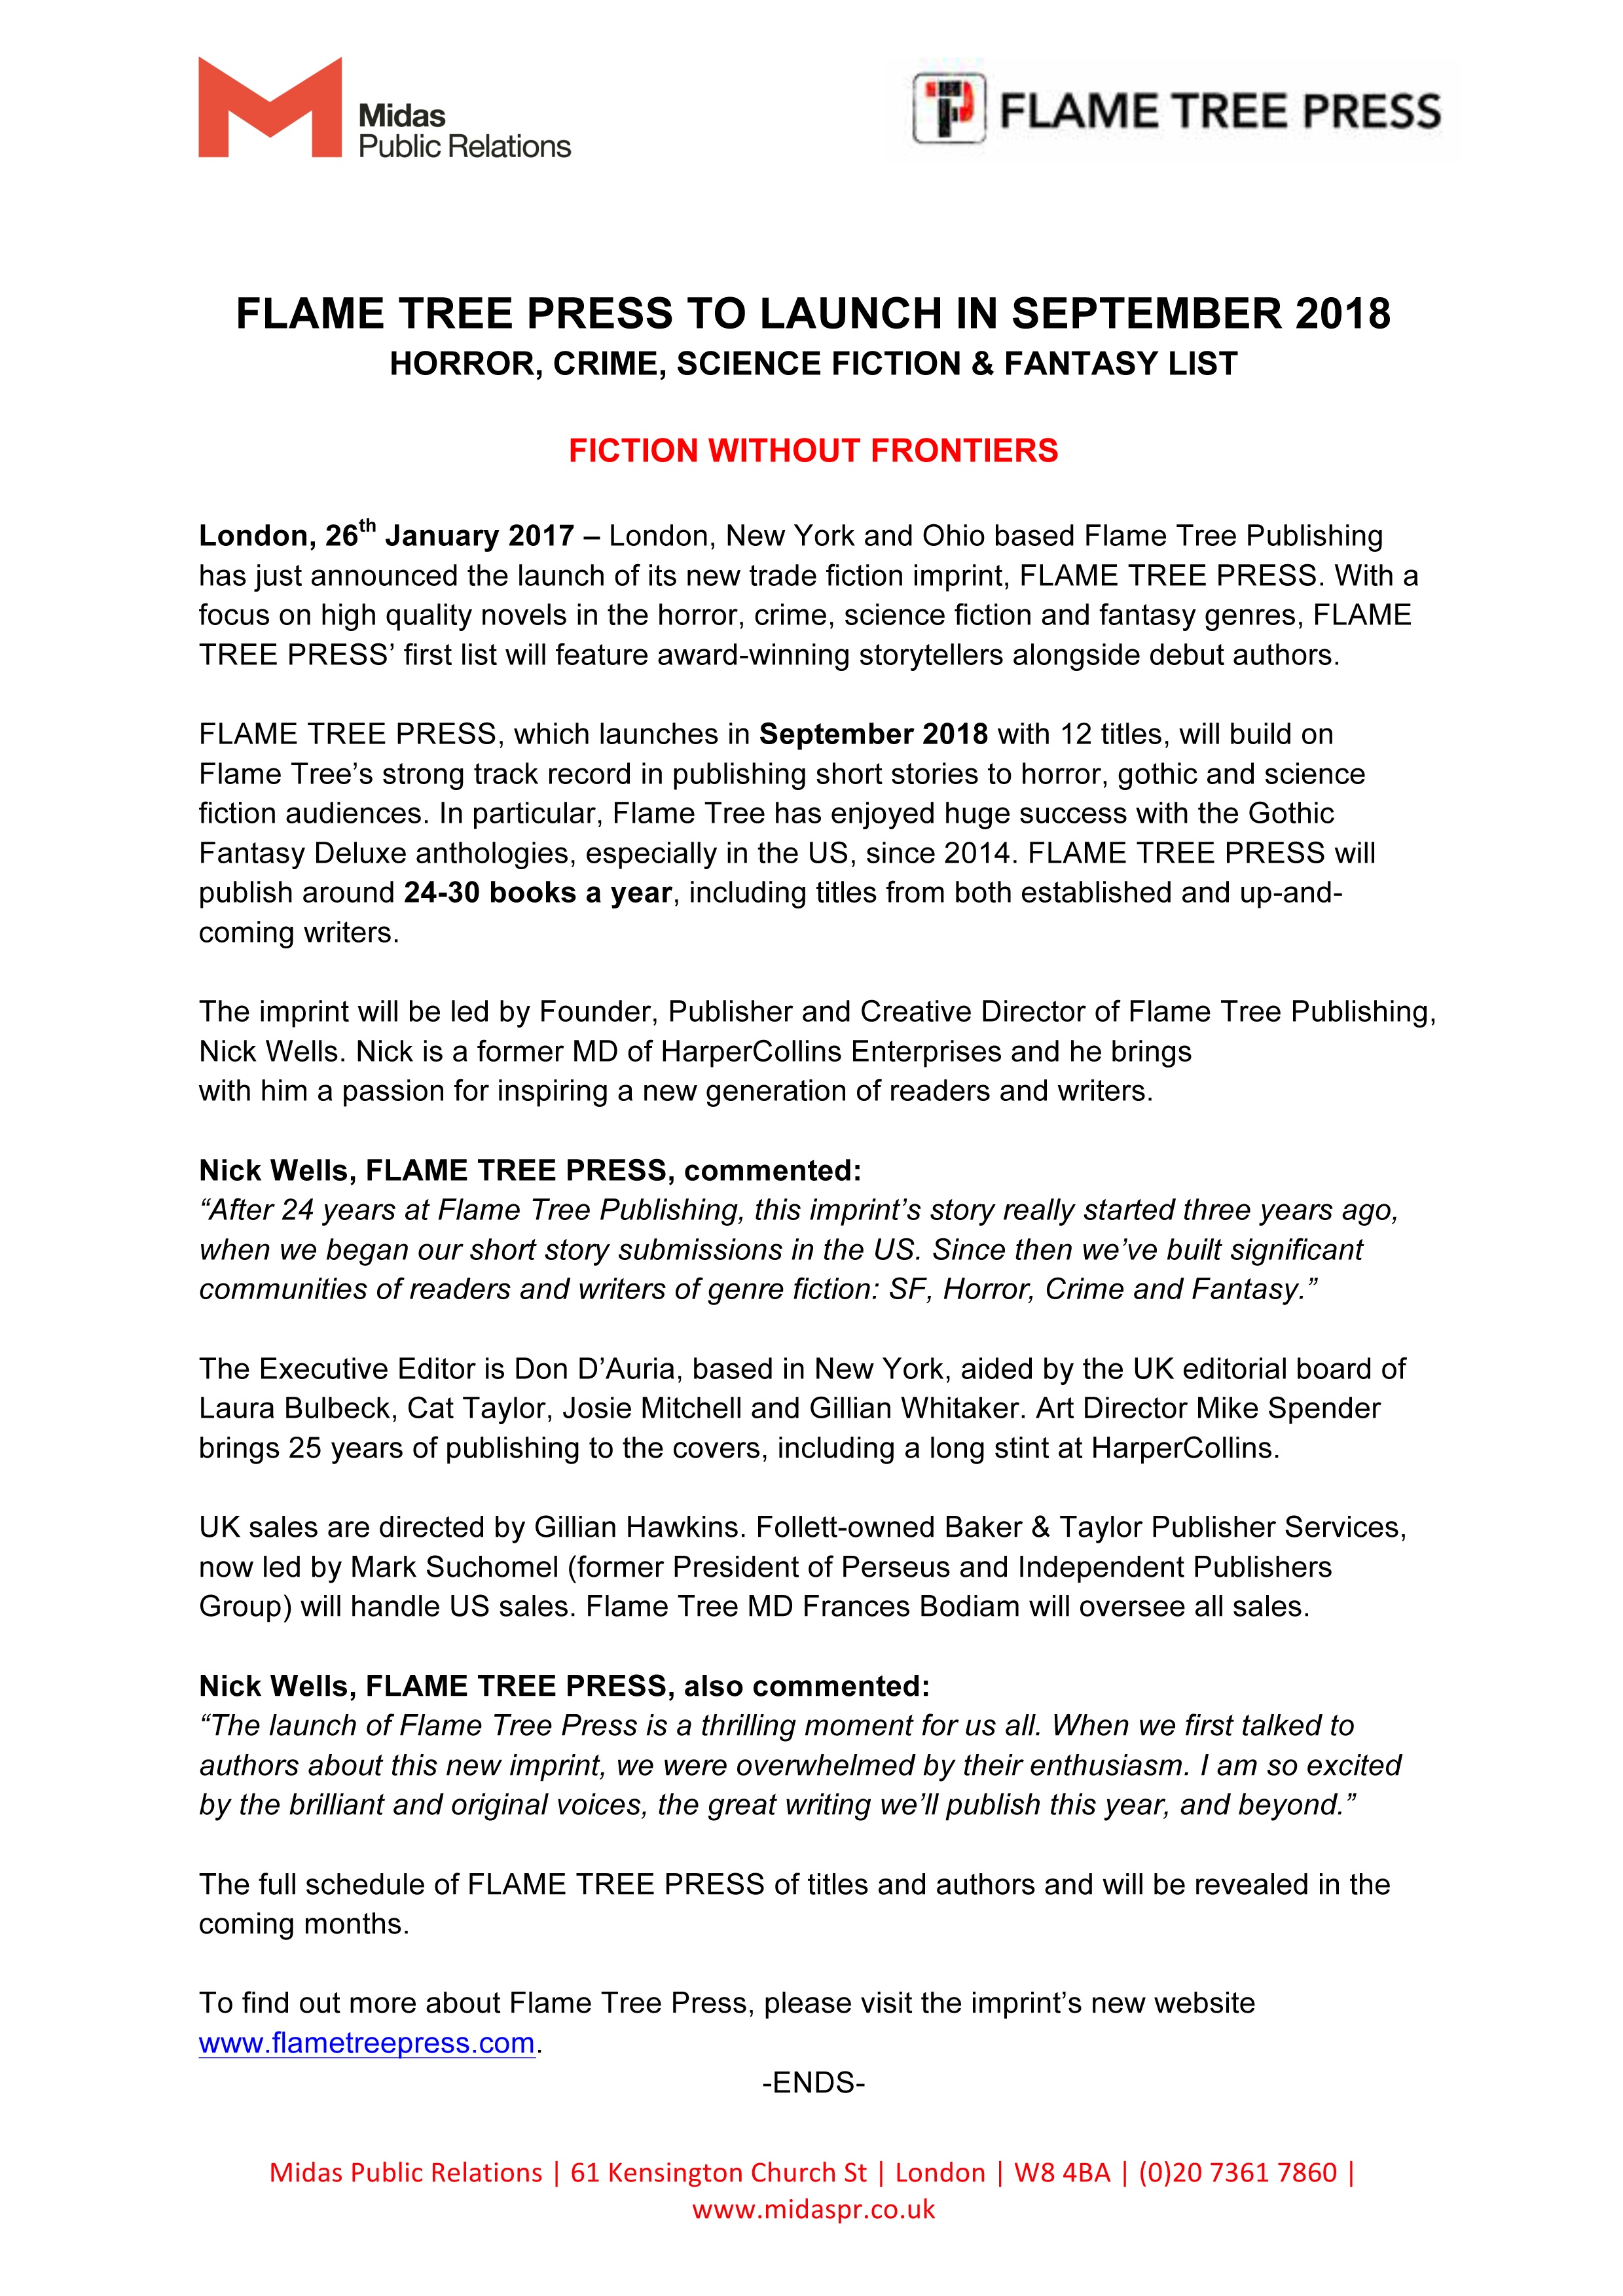 Flame Tree Press launch press release FINAL page 1.jpg